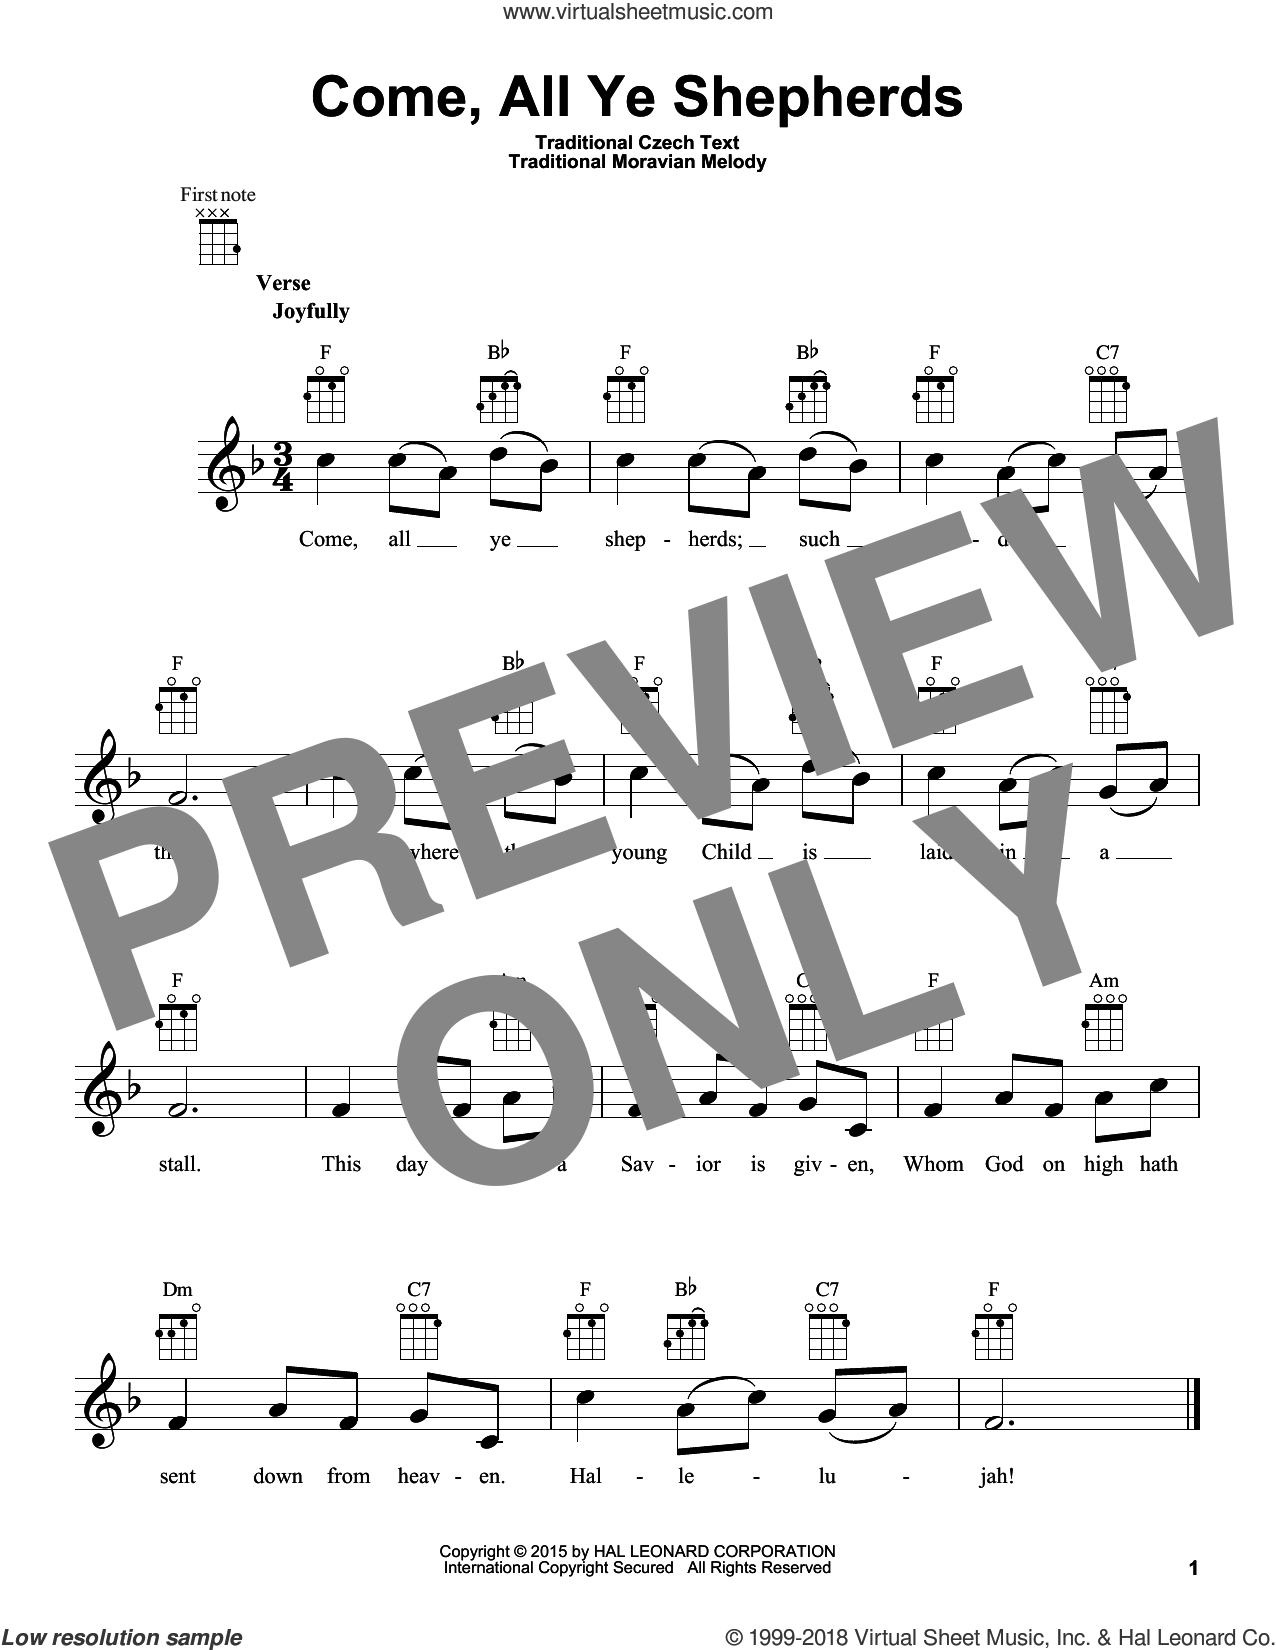 Come, All Ye Shepherds sheet music for ukulele. Score Image Preview.